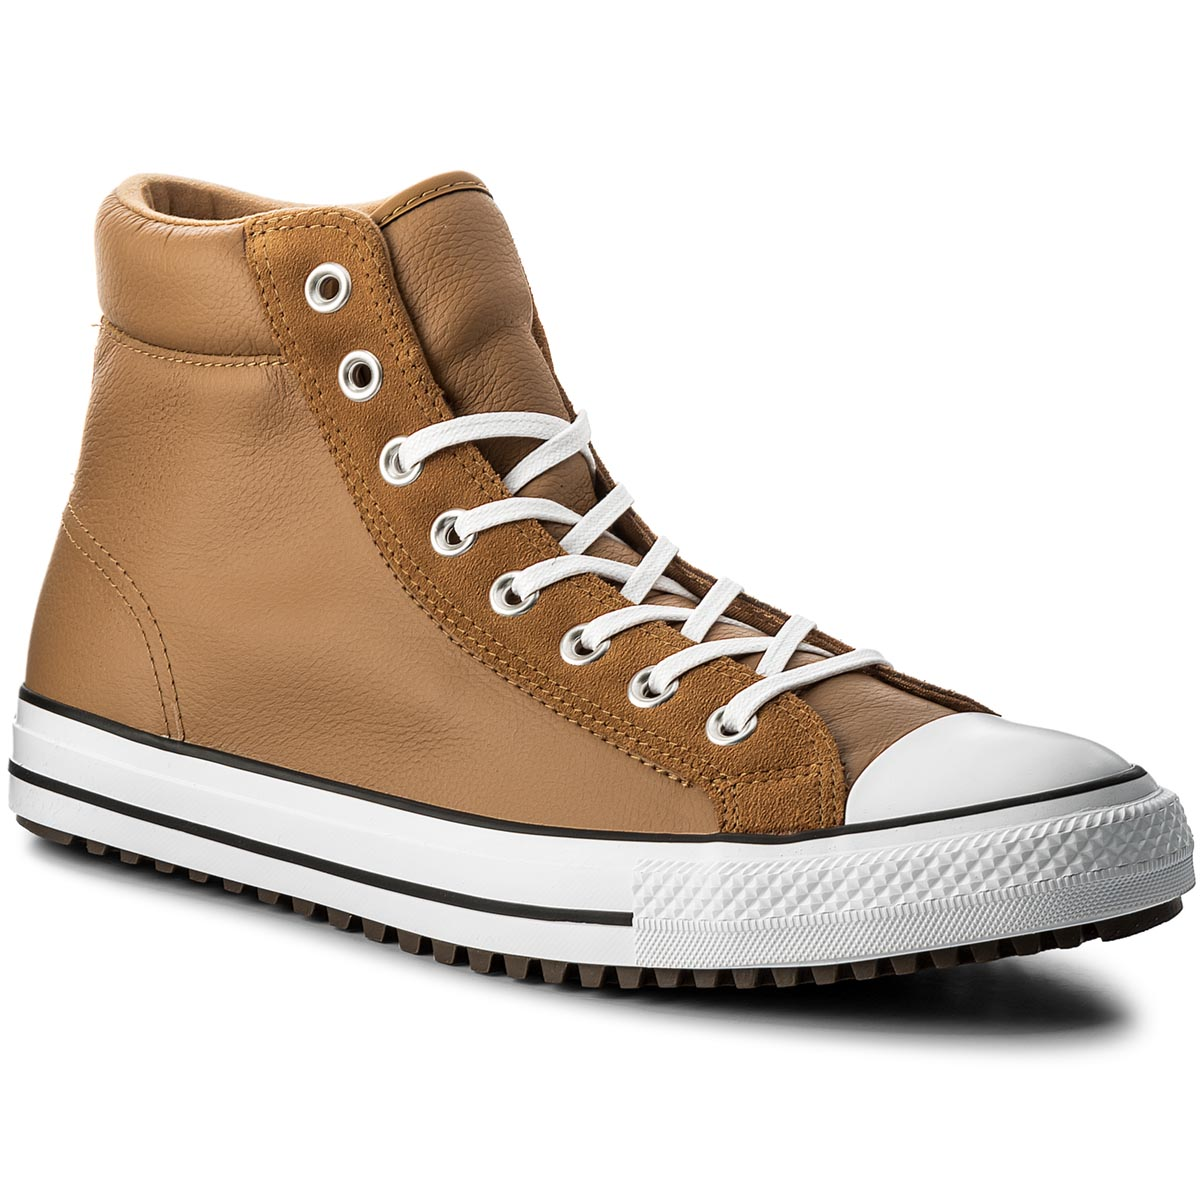 Teniși Converse - Ctas Boot Pc Hi 157494c Raw Sugar/White imagine epantofi.ro 2021